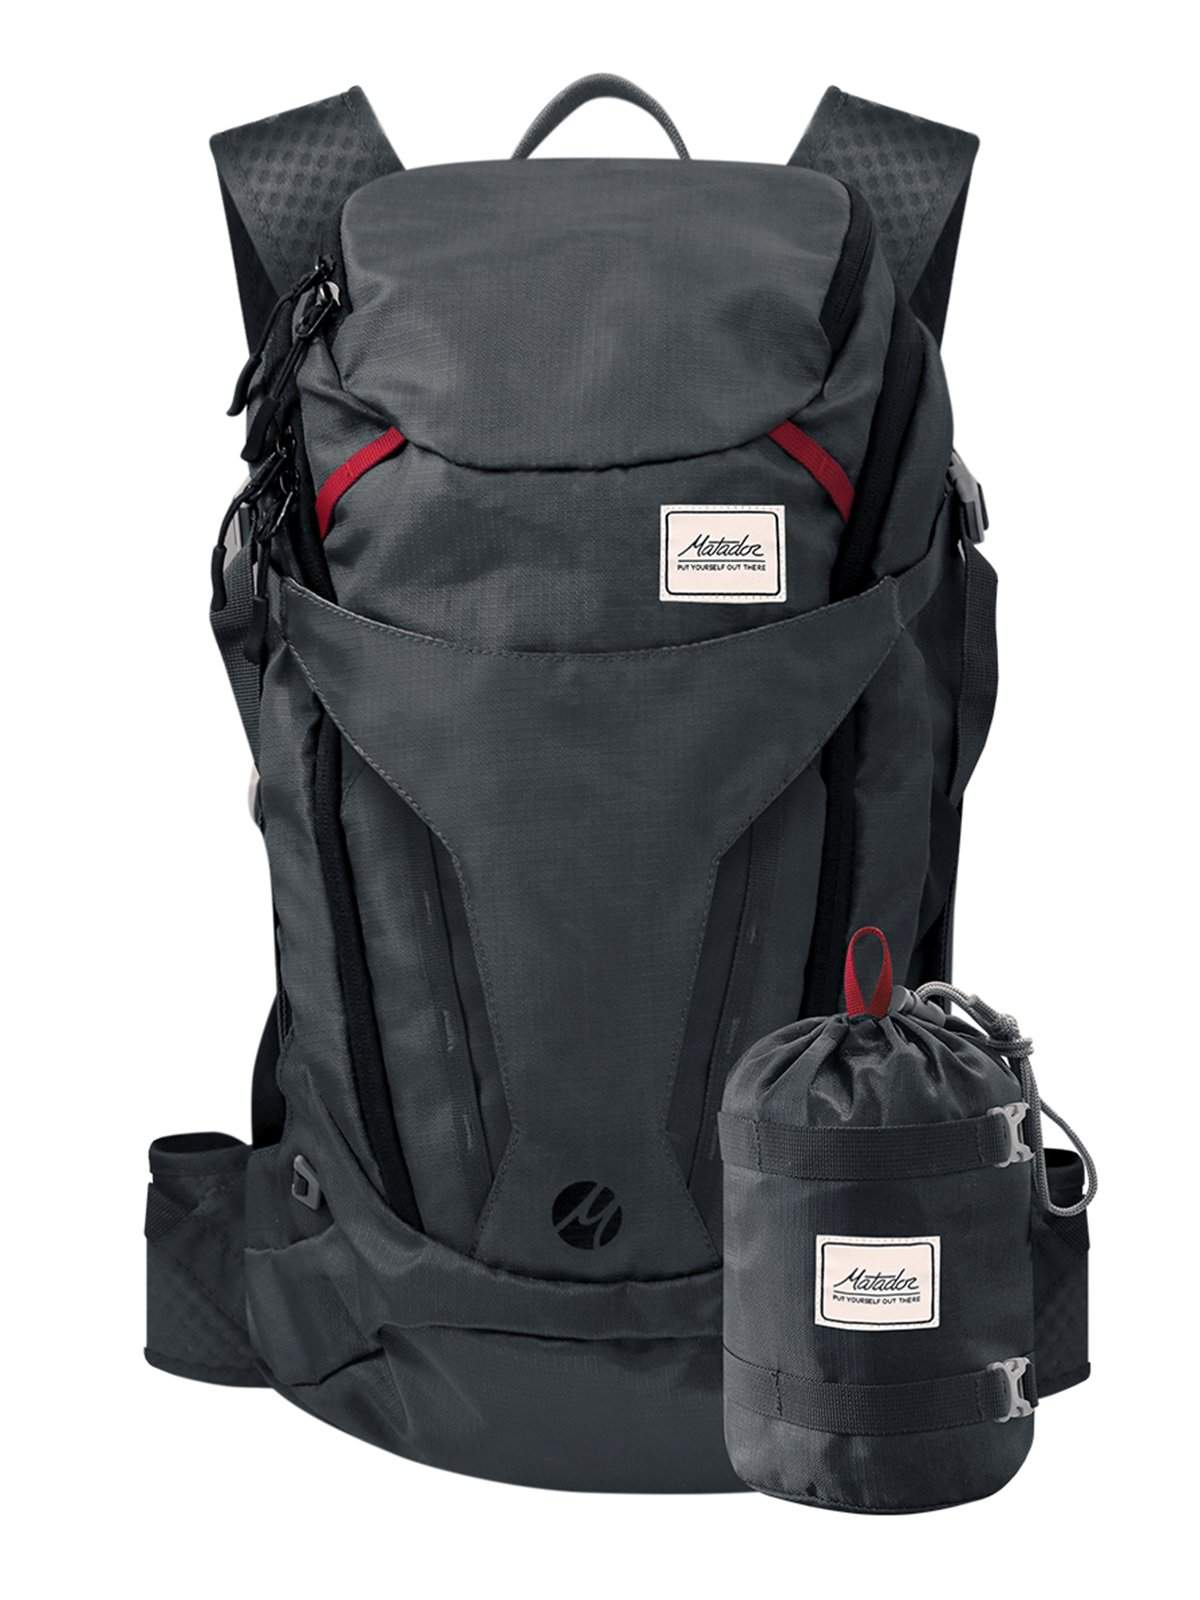 1f100c0481ca Matador Beast28 Technical Packable Backpack - MORE by Morello - Indonesia